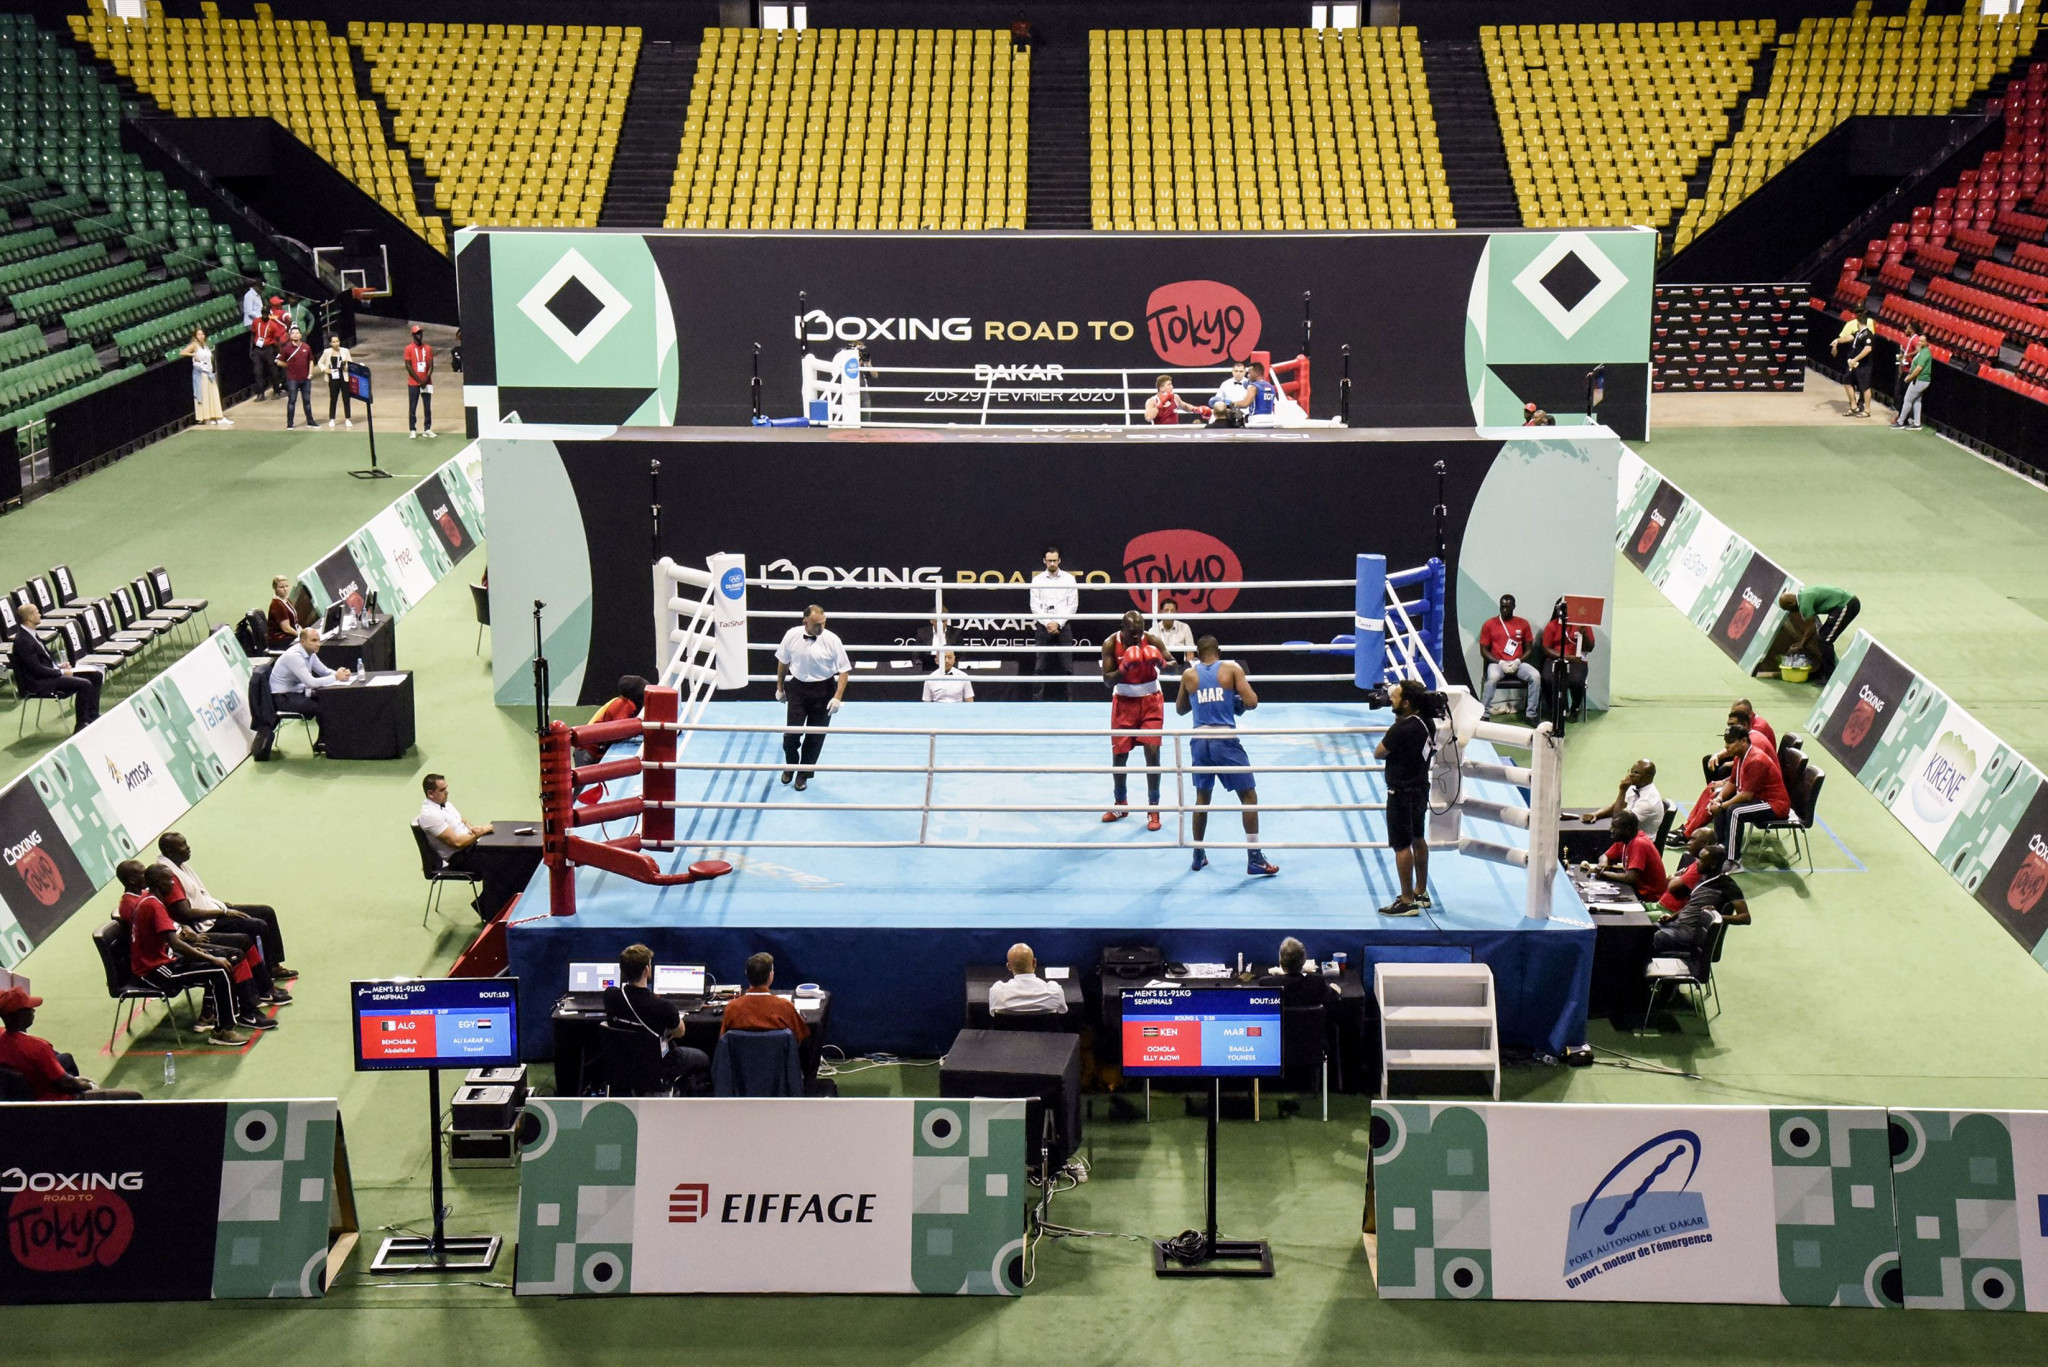 Dakar Arena staged the African boxing qualifier for Tokyo 2020 ©Getty Images